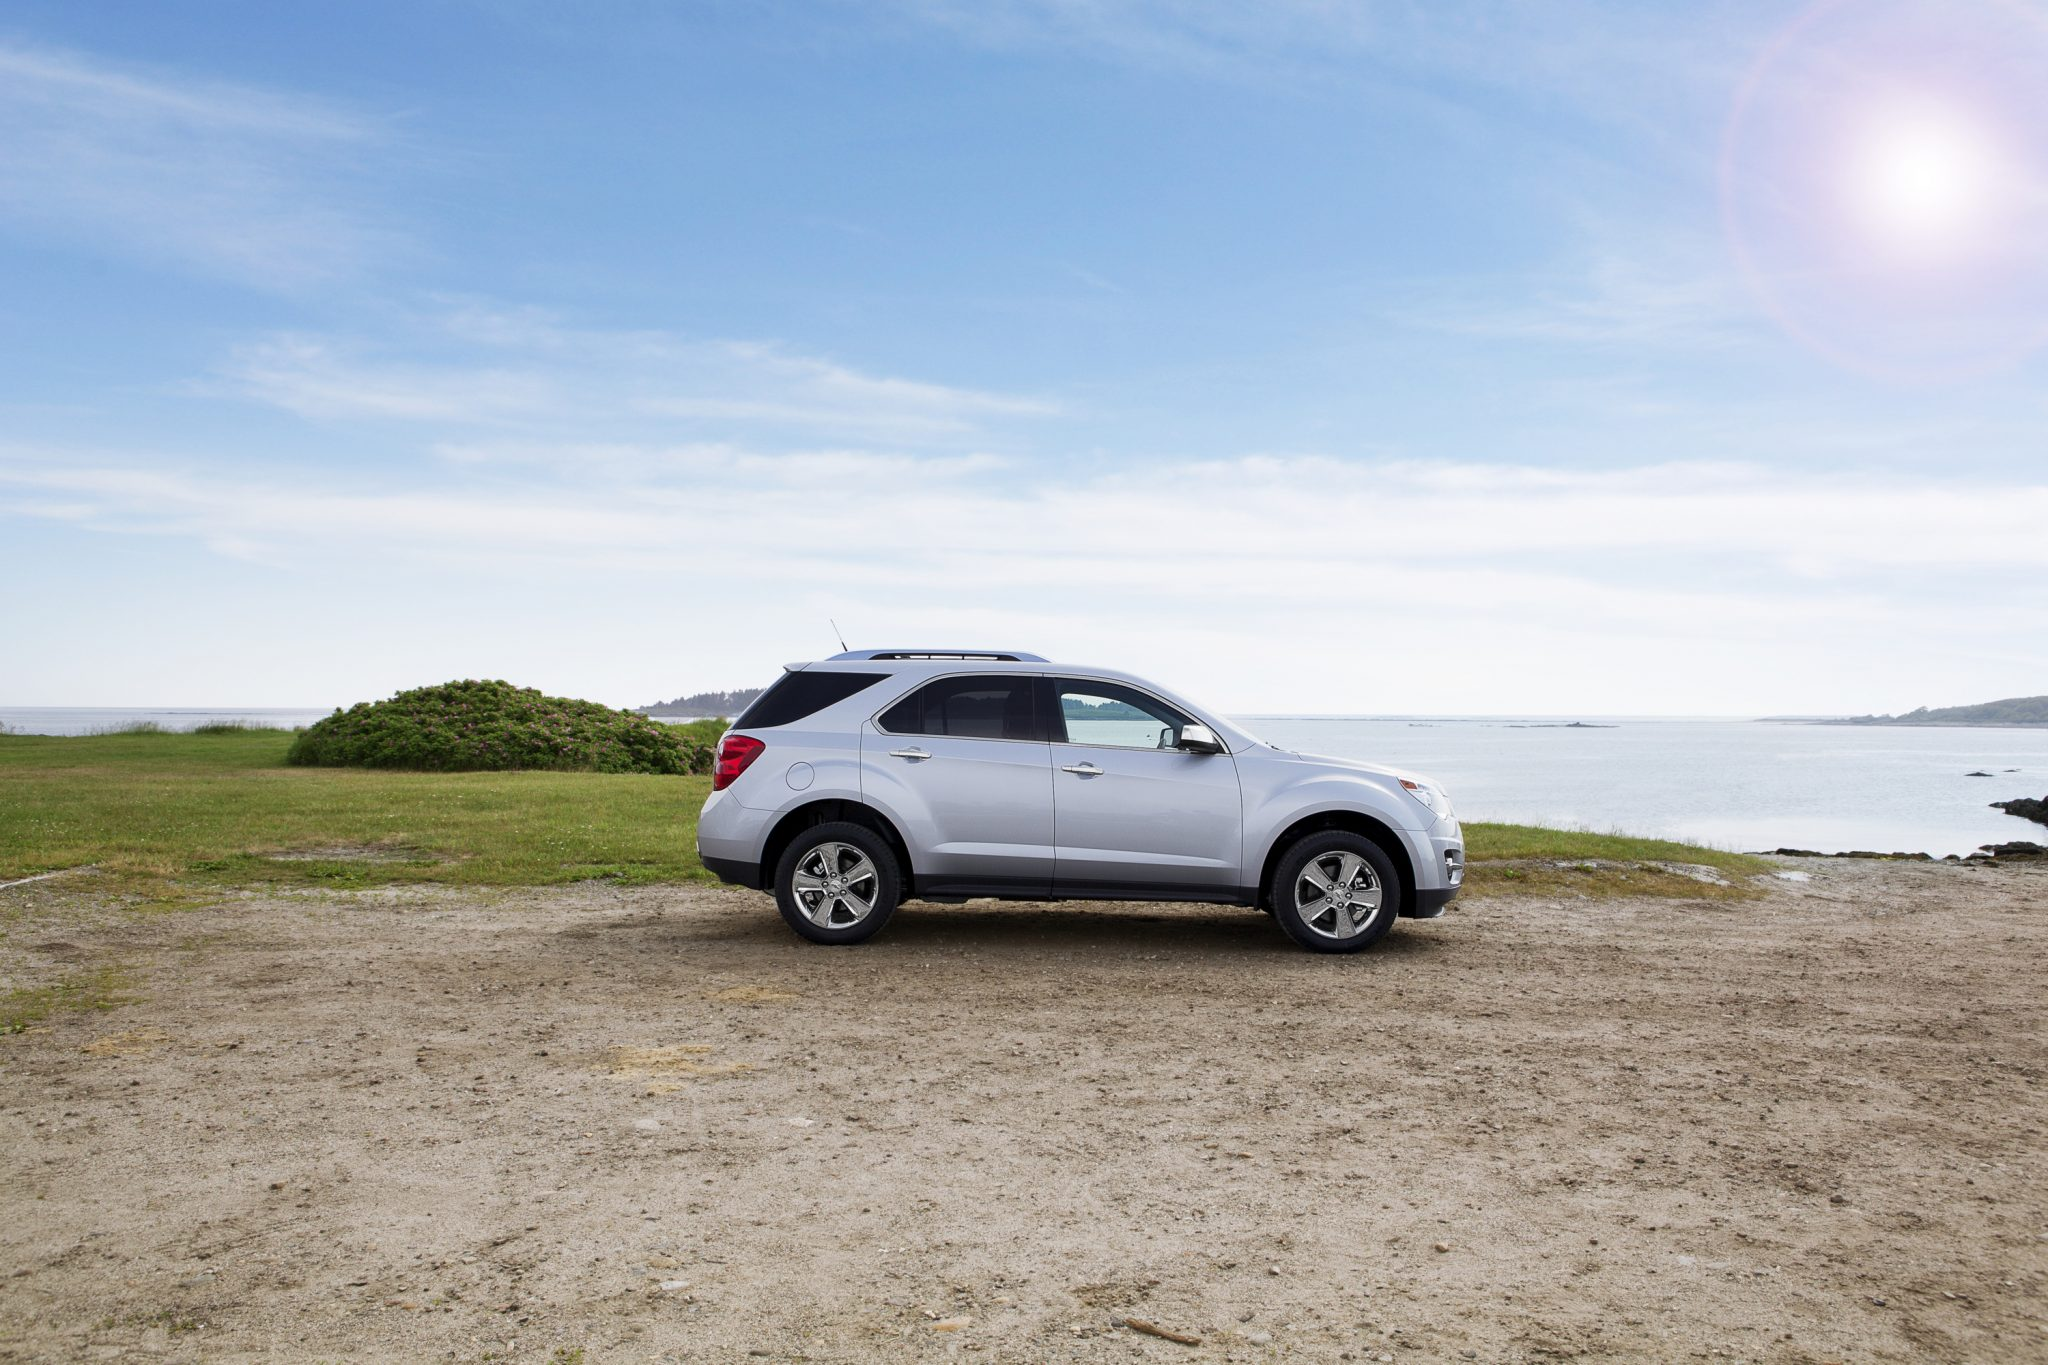 Chevy Equinox Sales On Track For Fifth Straight Year of Growth - The ...